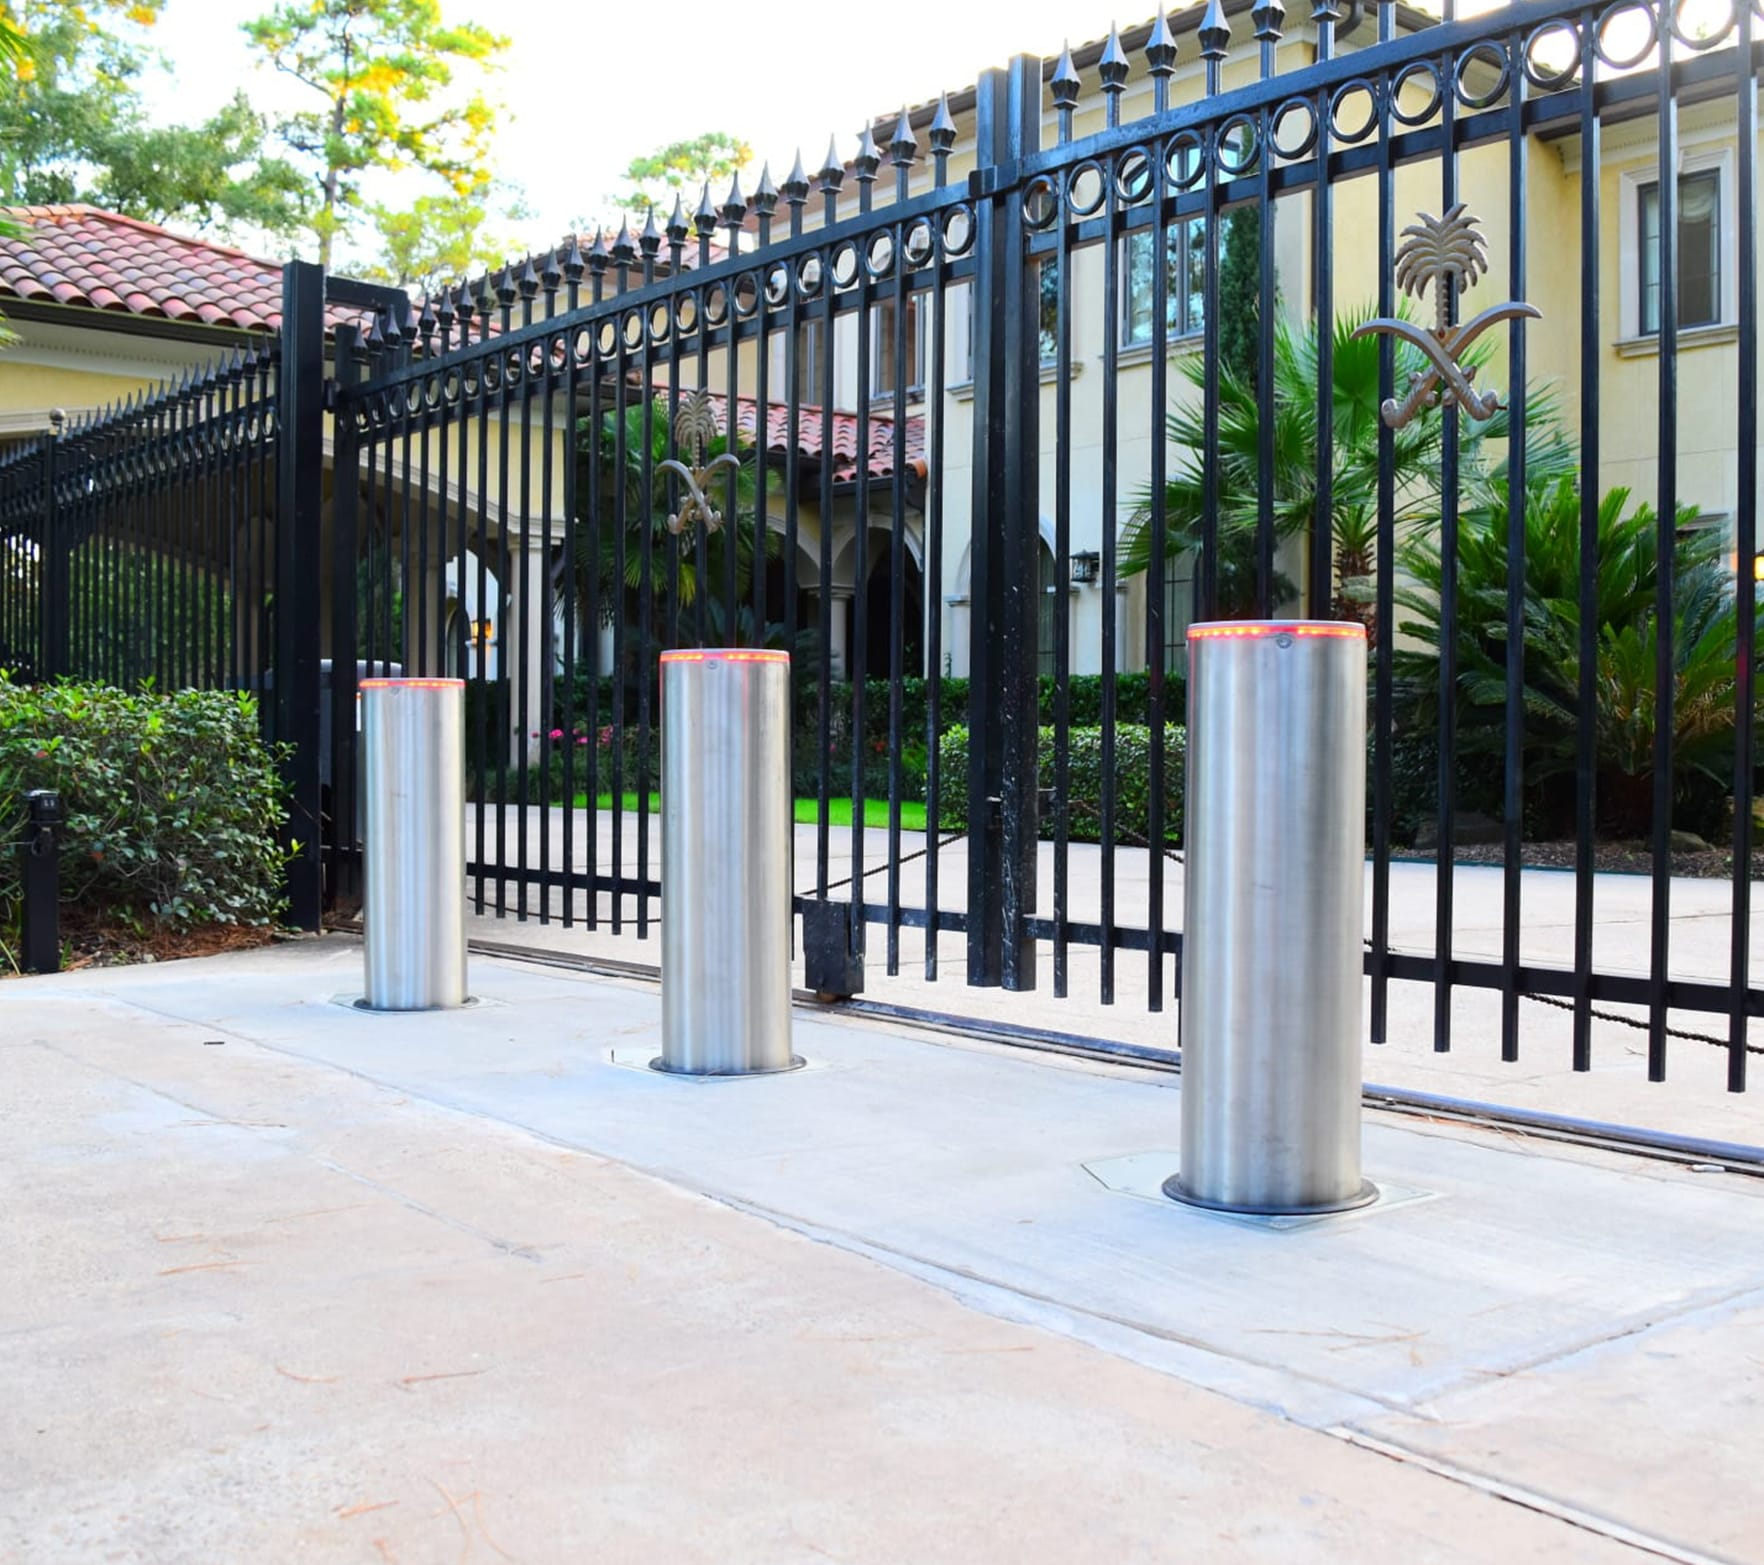 Retractable Bollards<br>Wedge Barriers<br>Crash Arms<br>Crash Gates